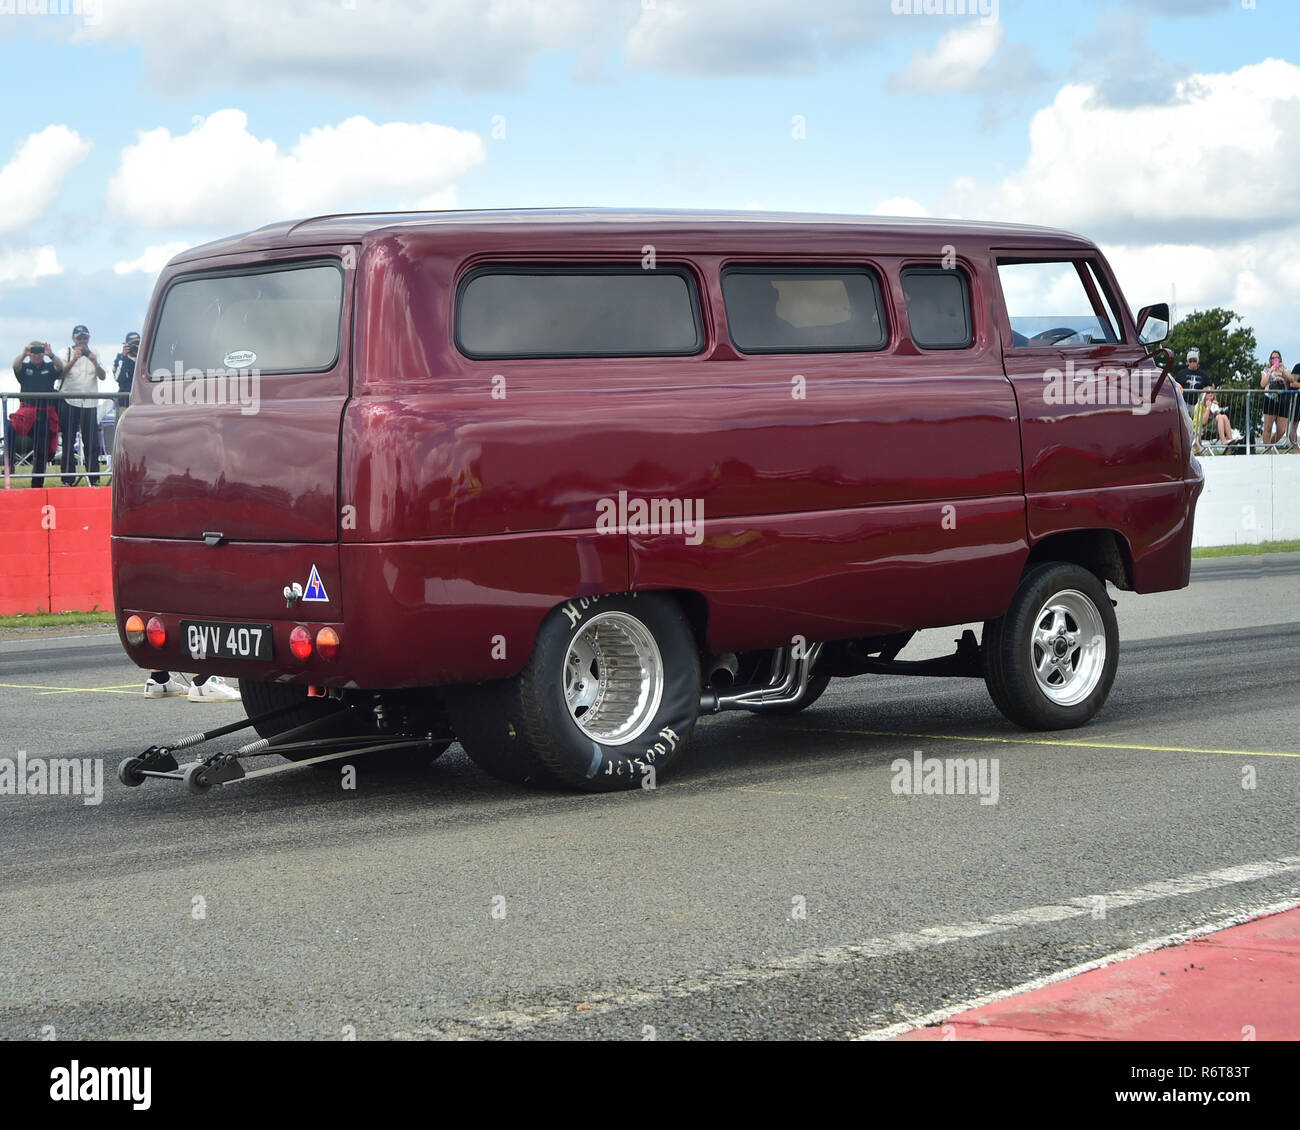 Modified Ford Van Ovv 407 Uk Street Machines Silverstone Classic 2014 2014 Classic Racing Cars Drag Racing Historic Racing Cars Hot Rods Hscc Stock Photo Alamy